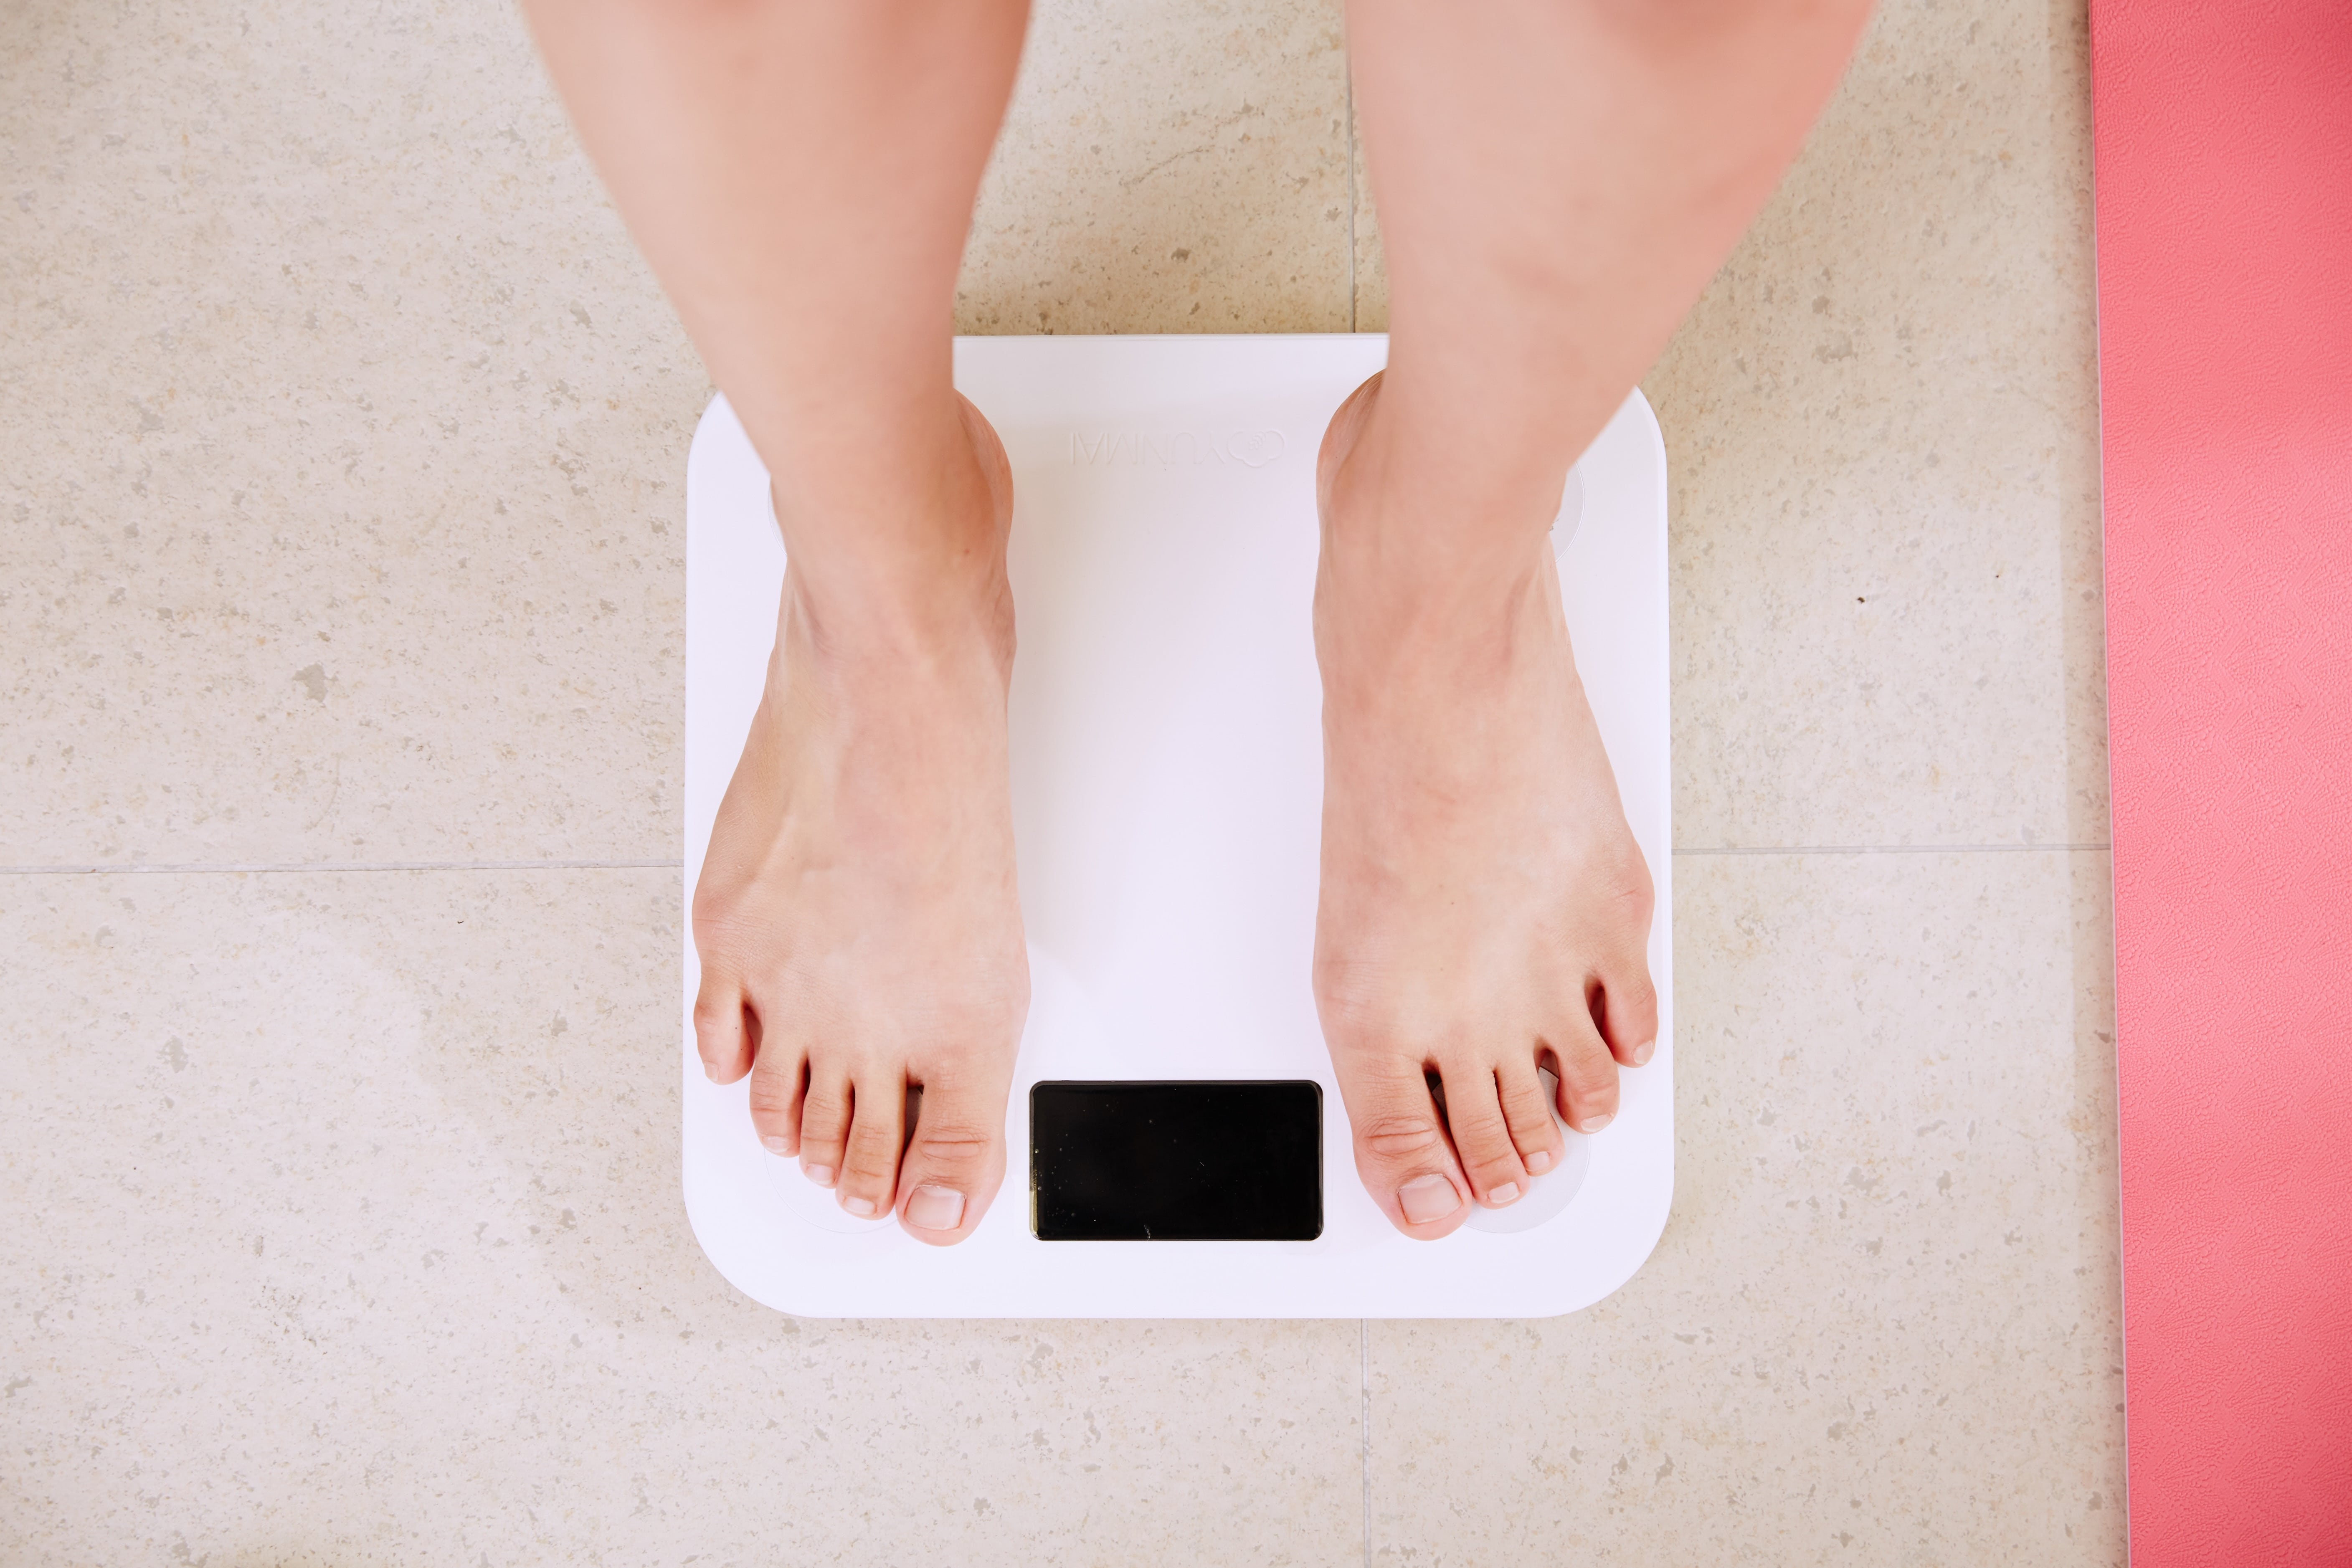 Weight Gain: The Good, The Bad and The Ugly